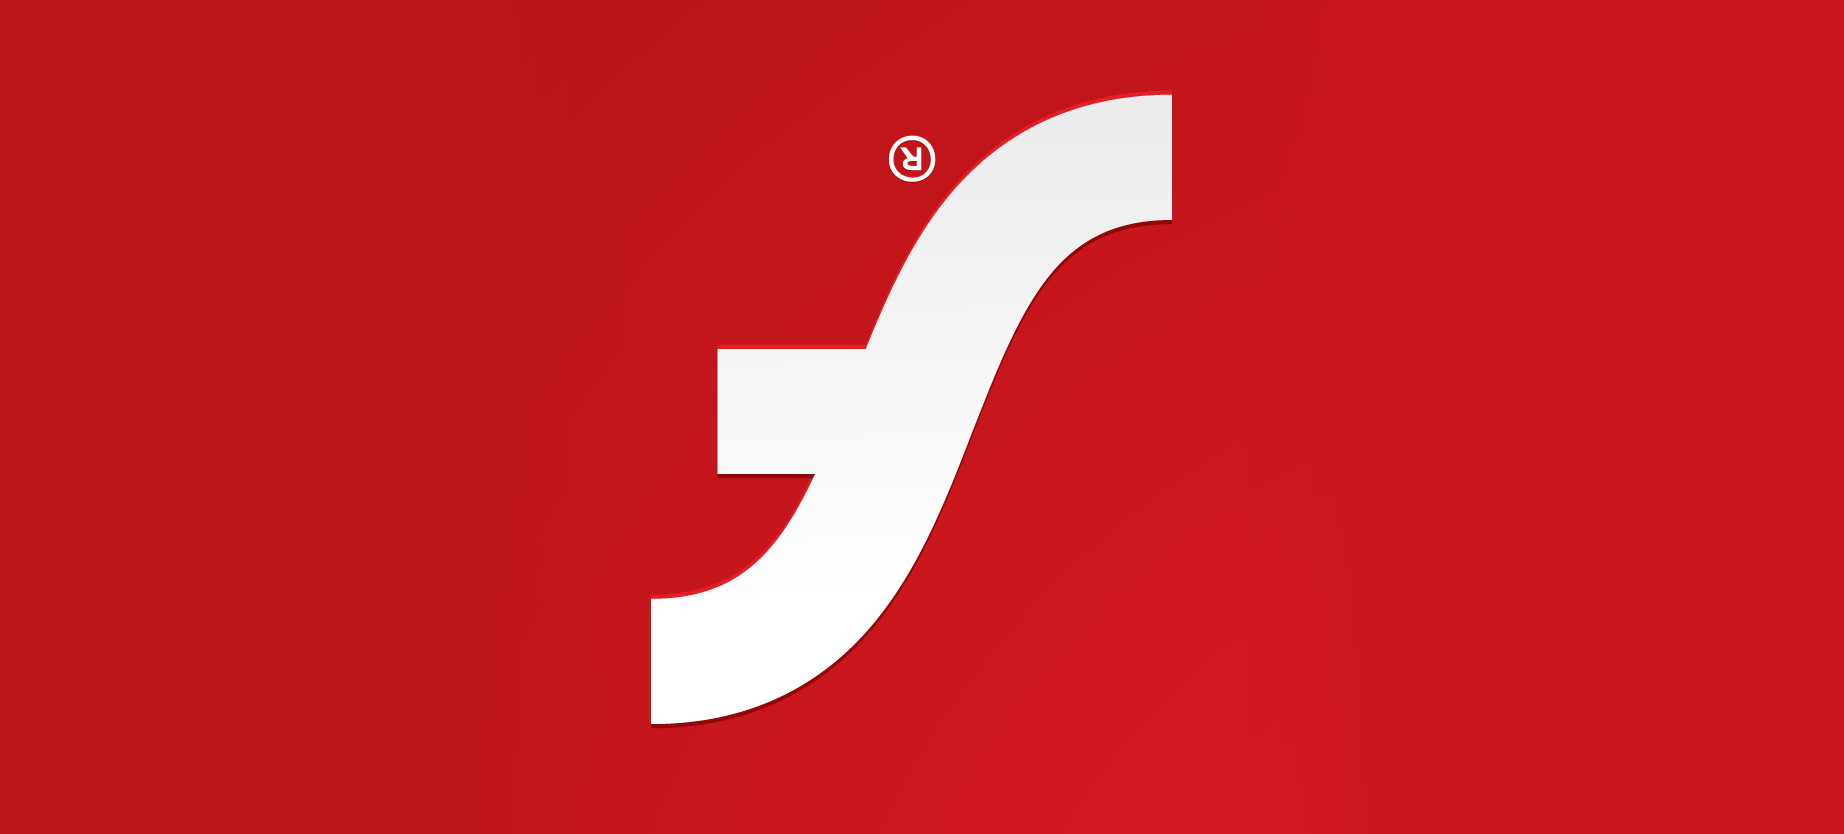 Google's Banned Flash From Display Ads